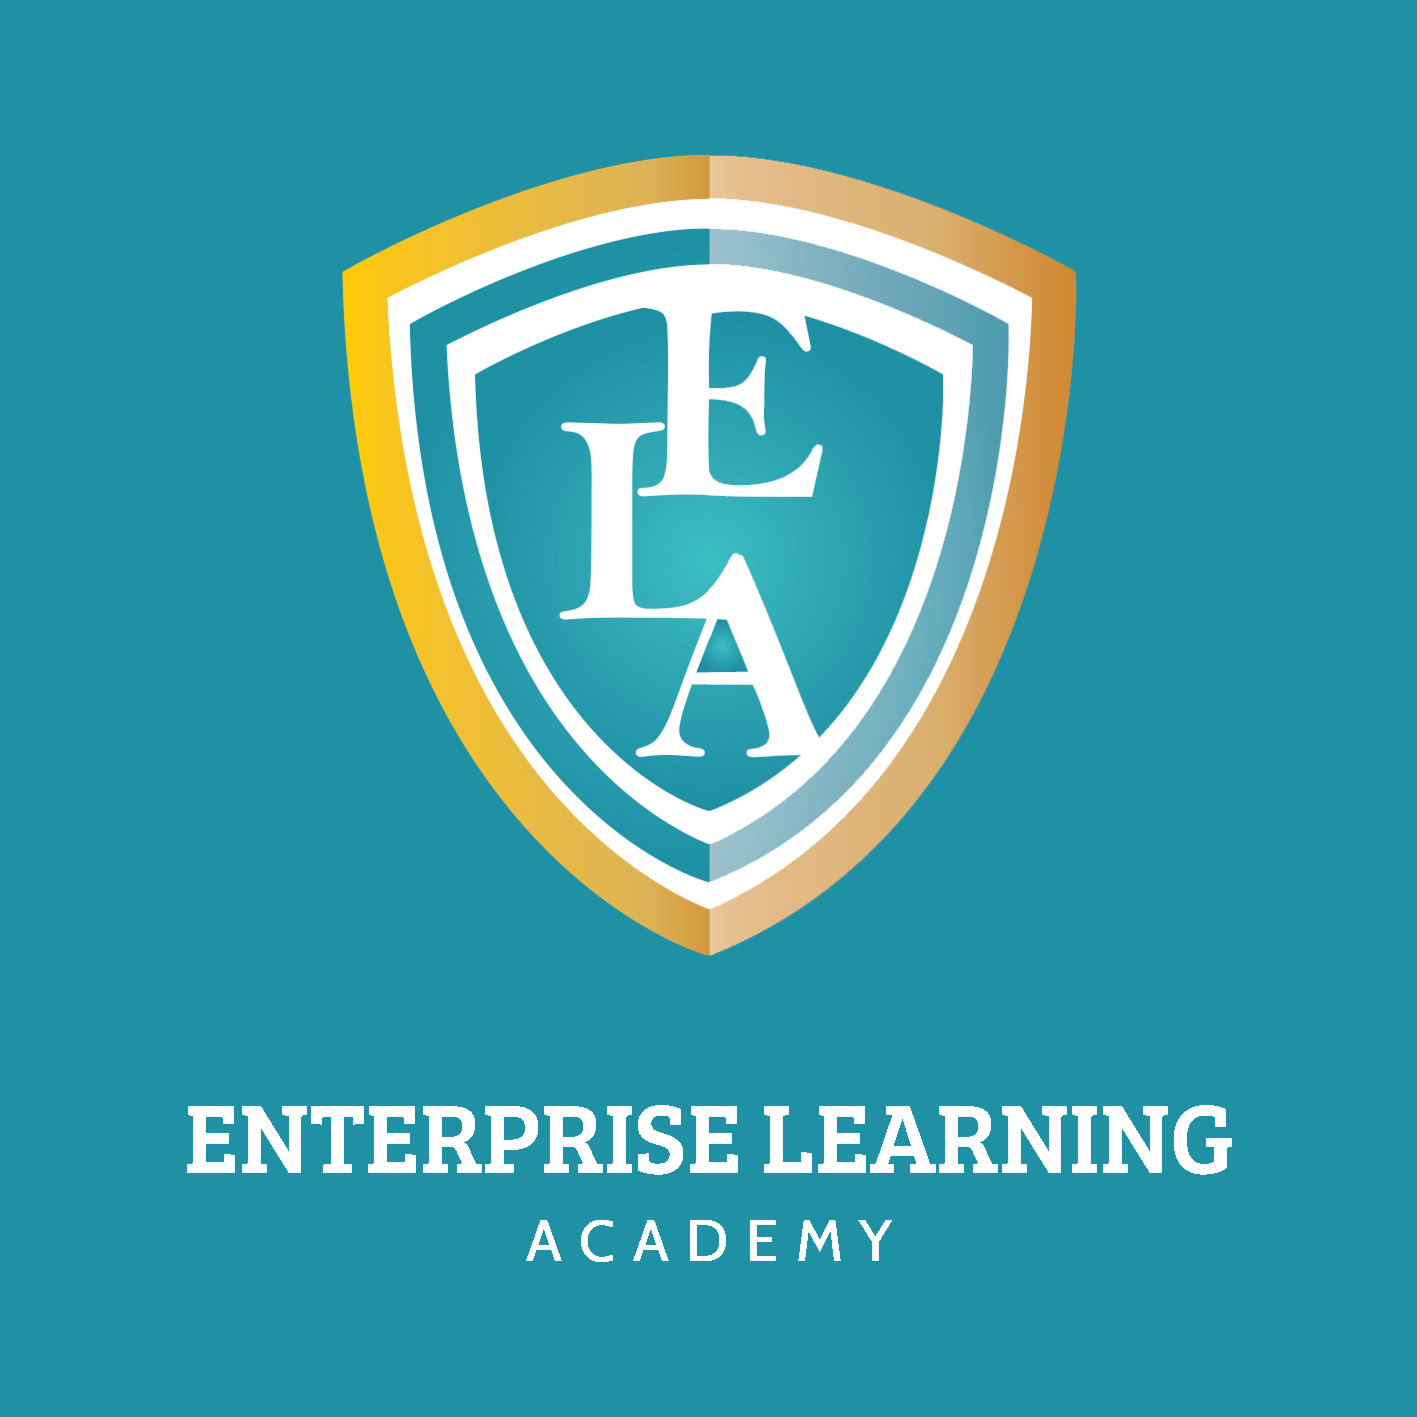 Enterprise Learning Academy